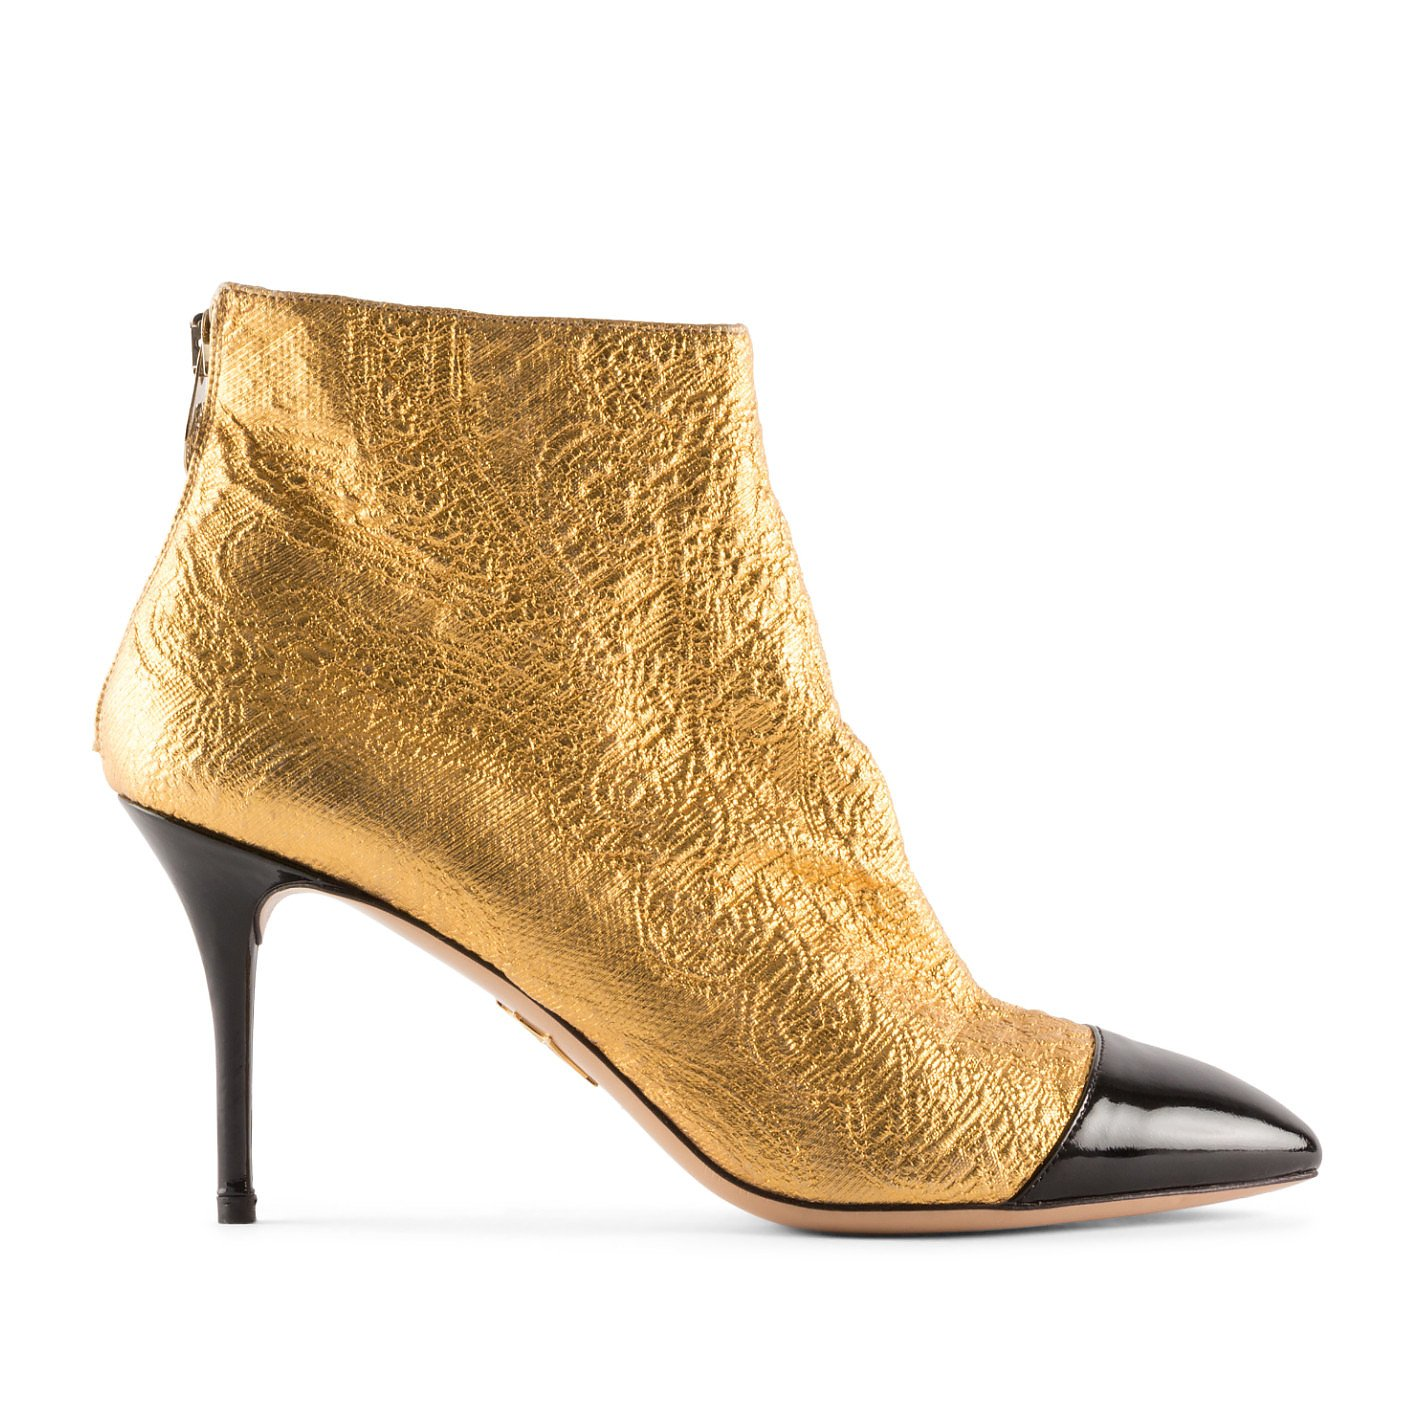 Charlotte Olympia Metallic Heeled Ankle Boots